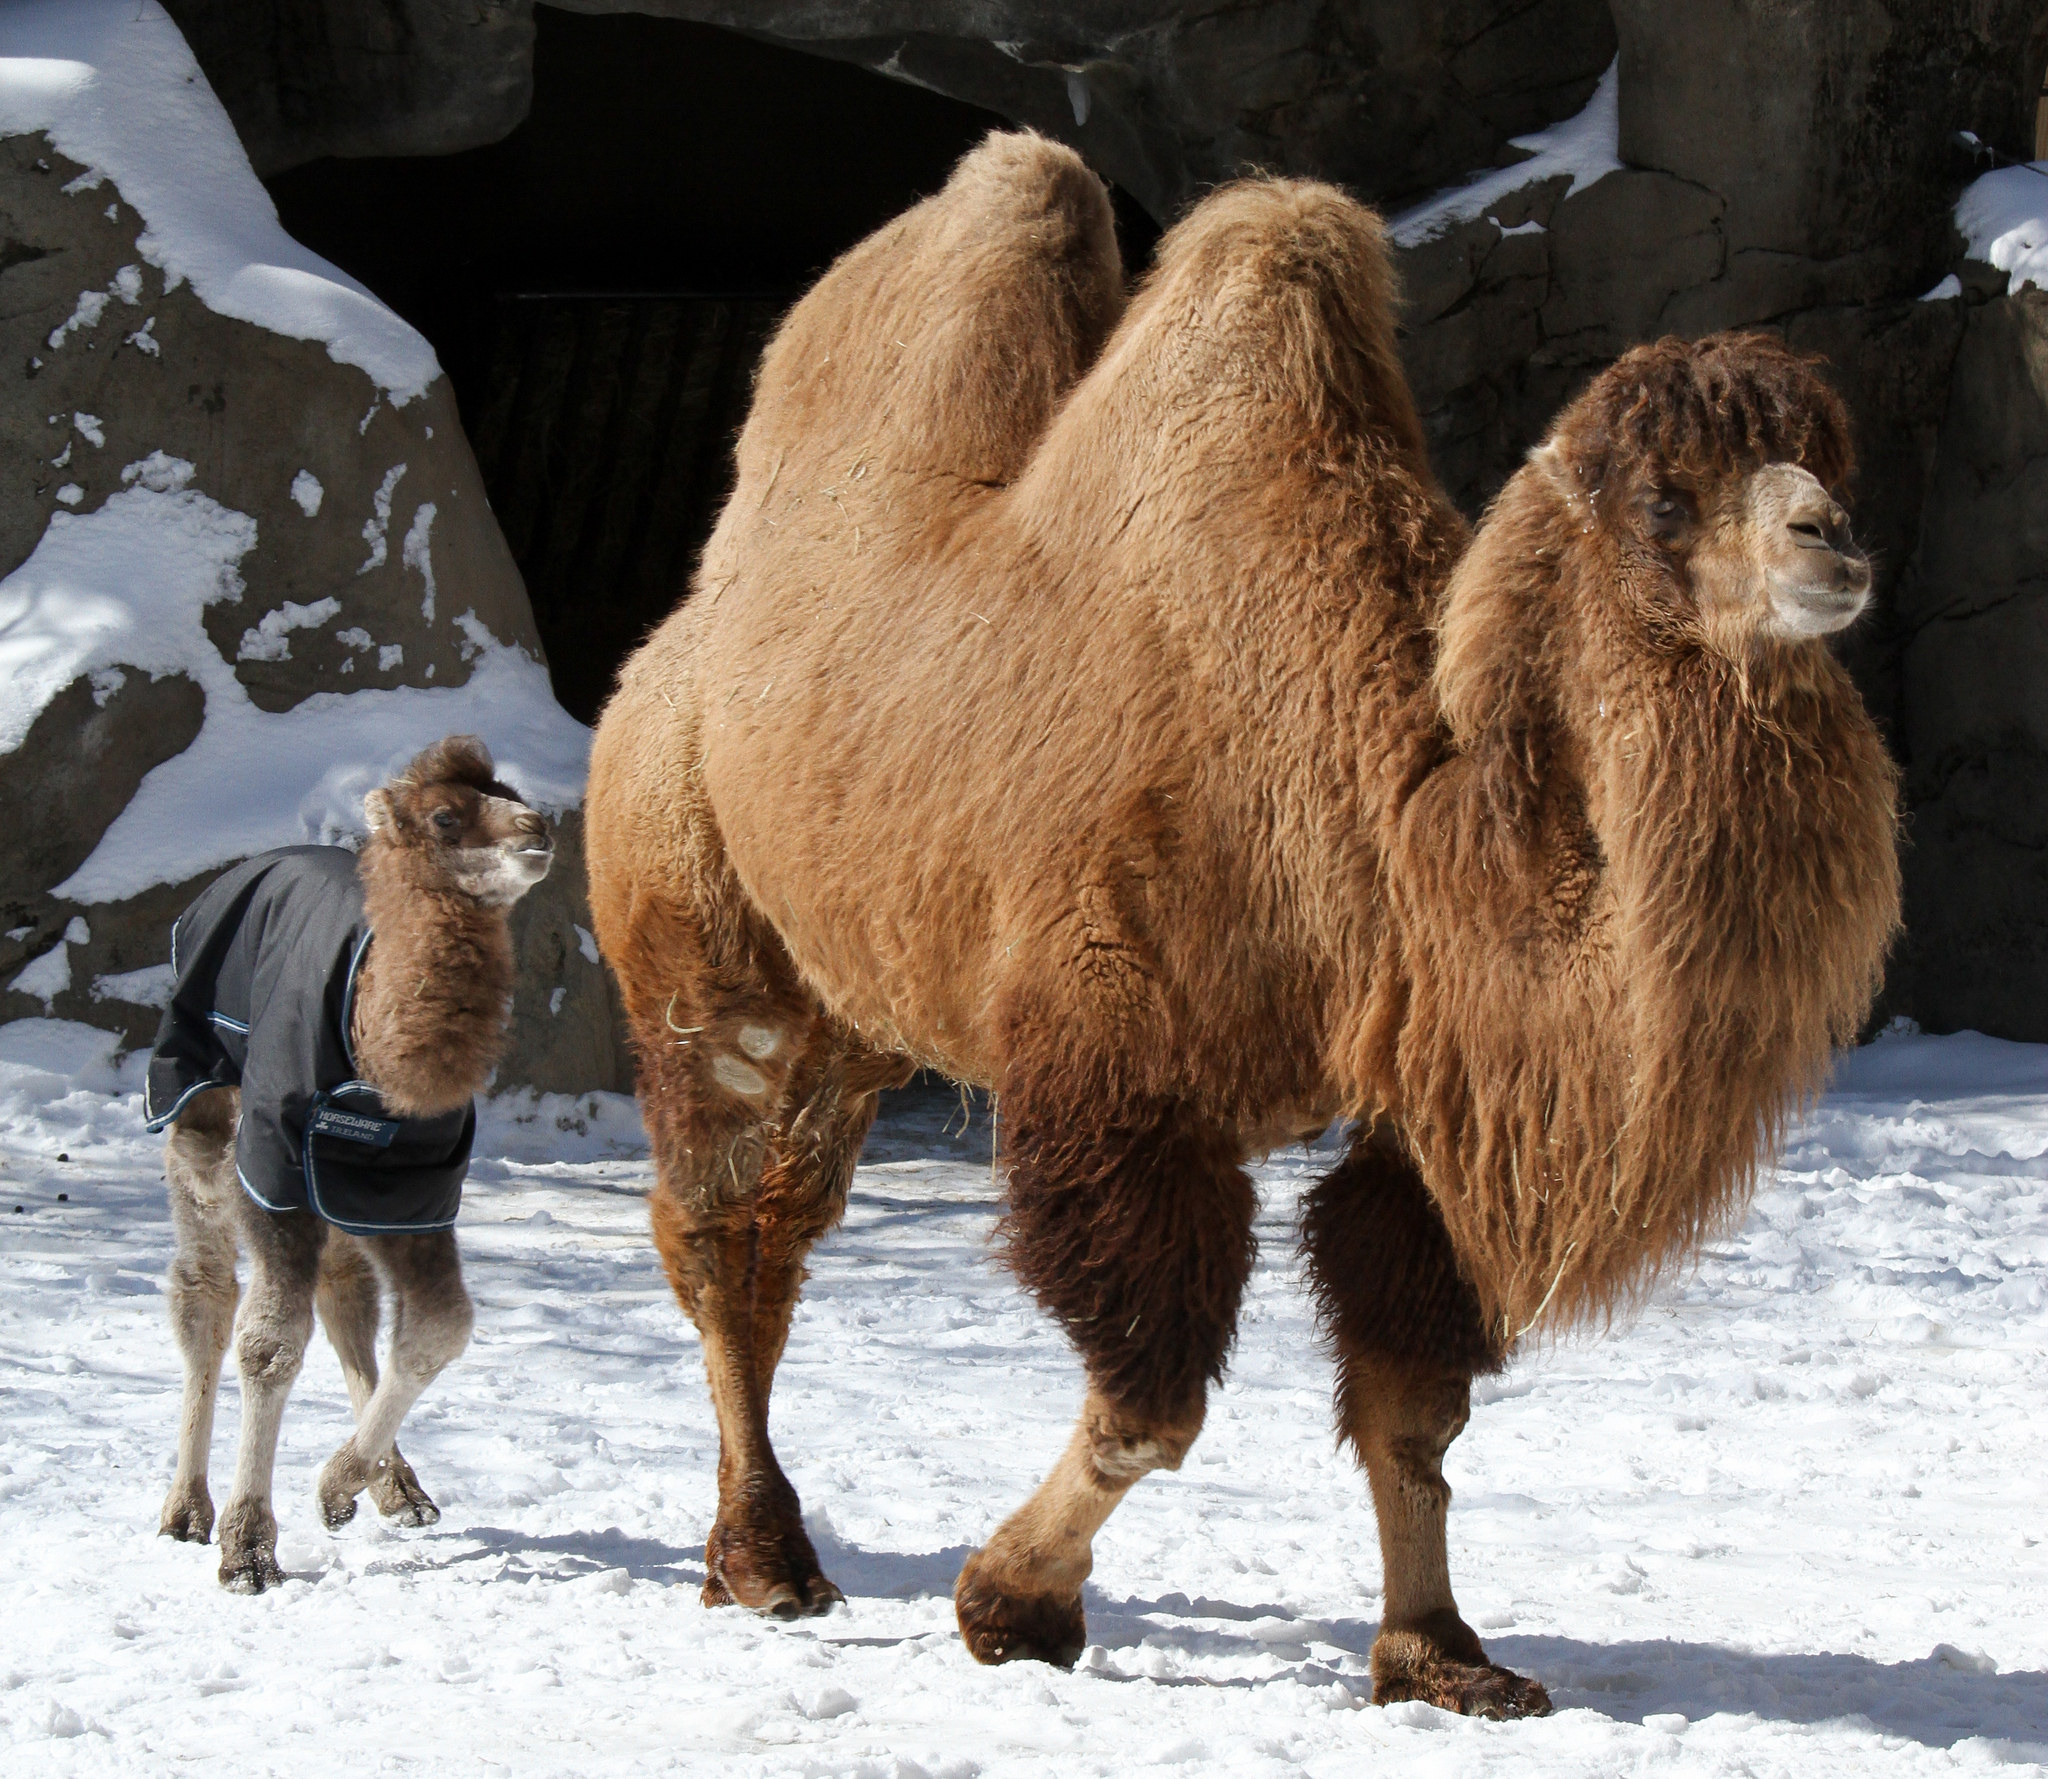 a look at two humped bactrian camel of central asia Dromedary, or arabian, camels have one hump and live in the middle east and northern africa, while bactrian camels have two humps and live in central asia arabian camels are domestic animals there are two separate types of bactrian camels: wild and domestic as of 2014, there are less than 1,000 .